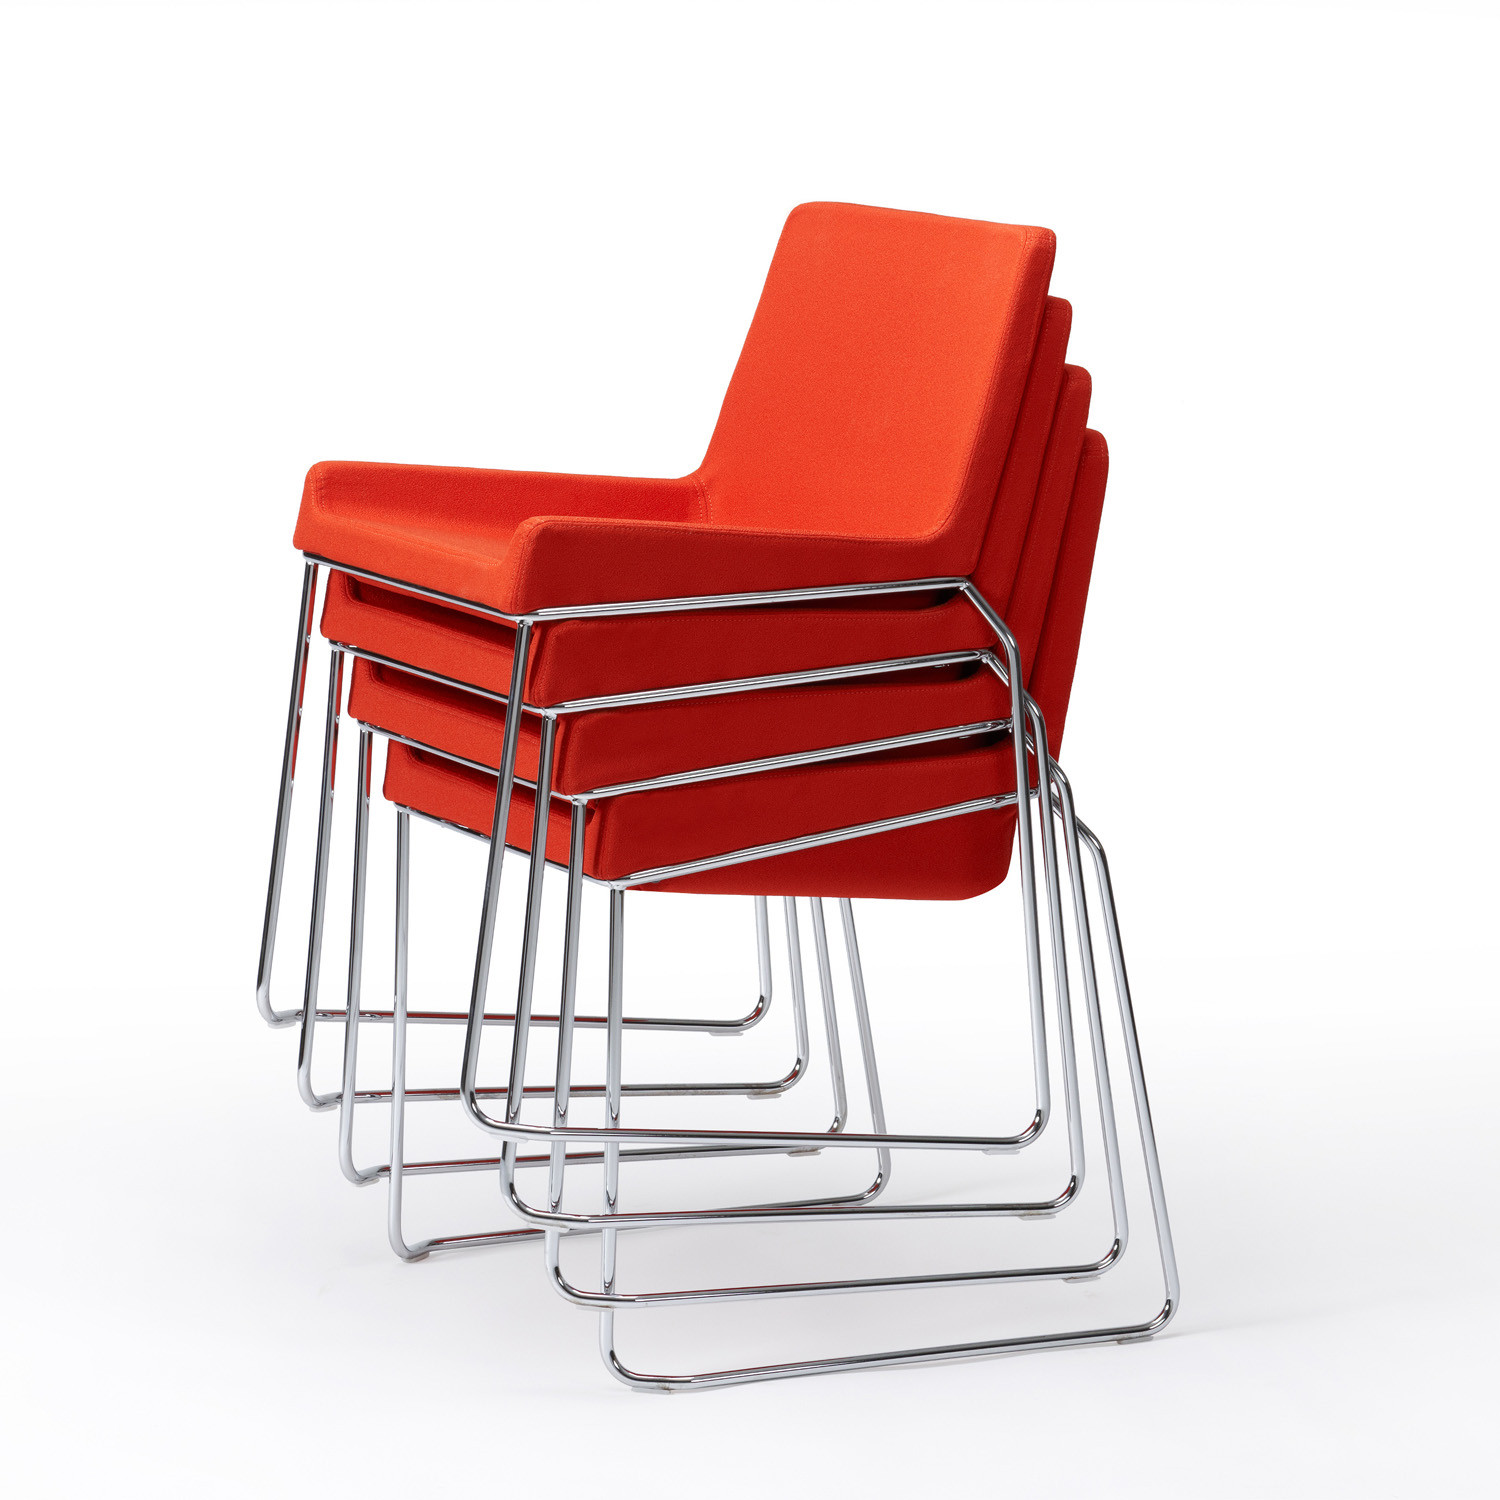 Tonic Stackable Chairs